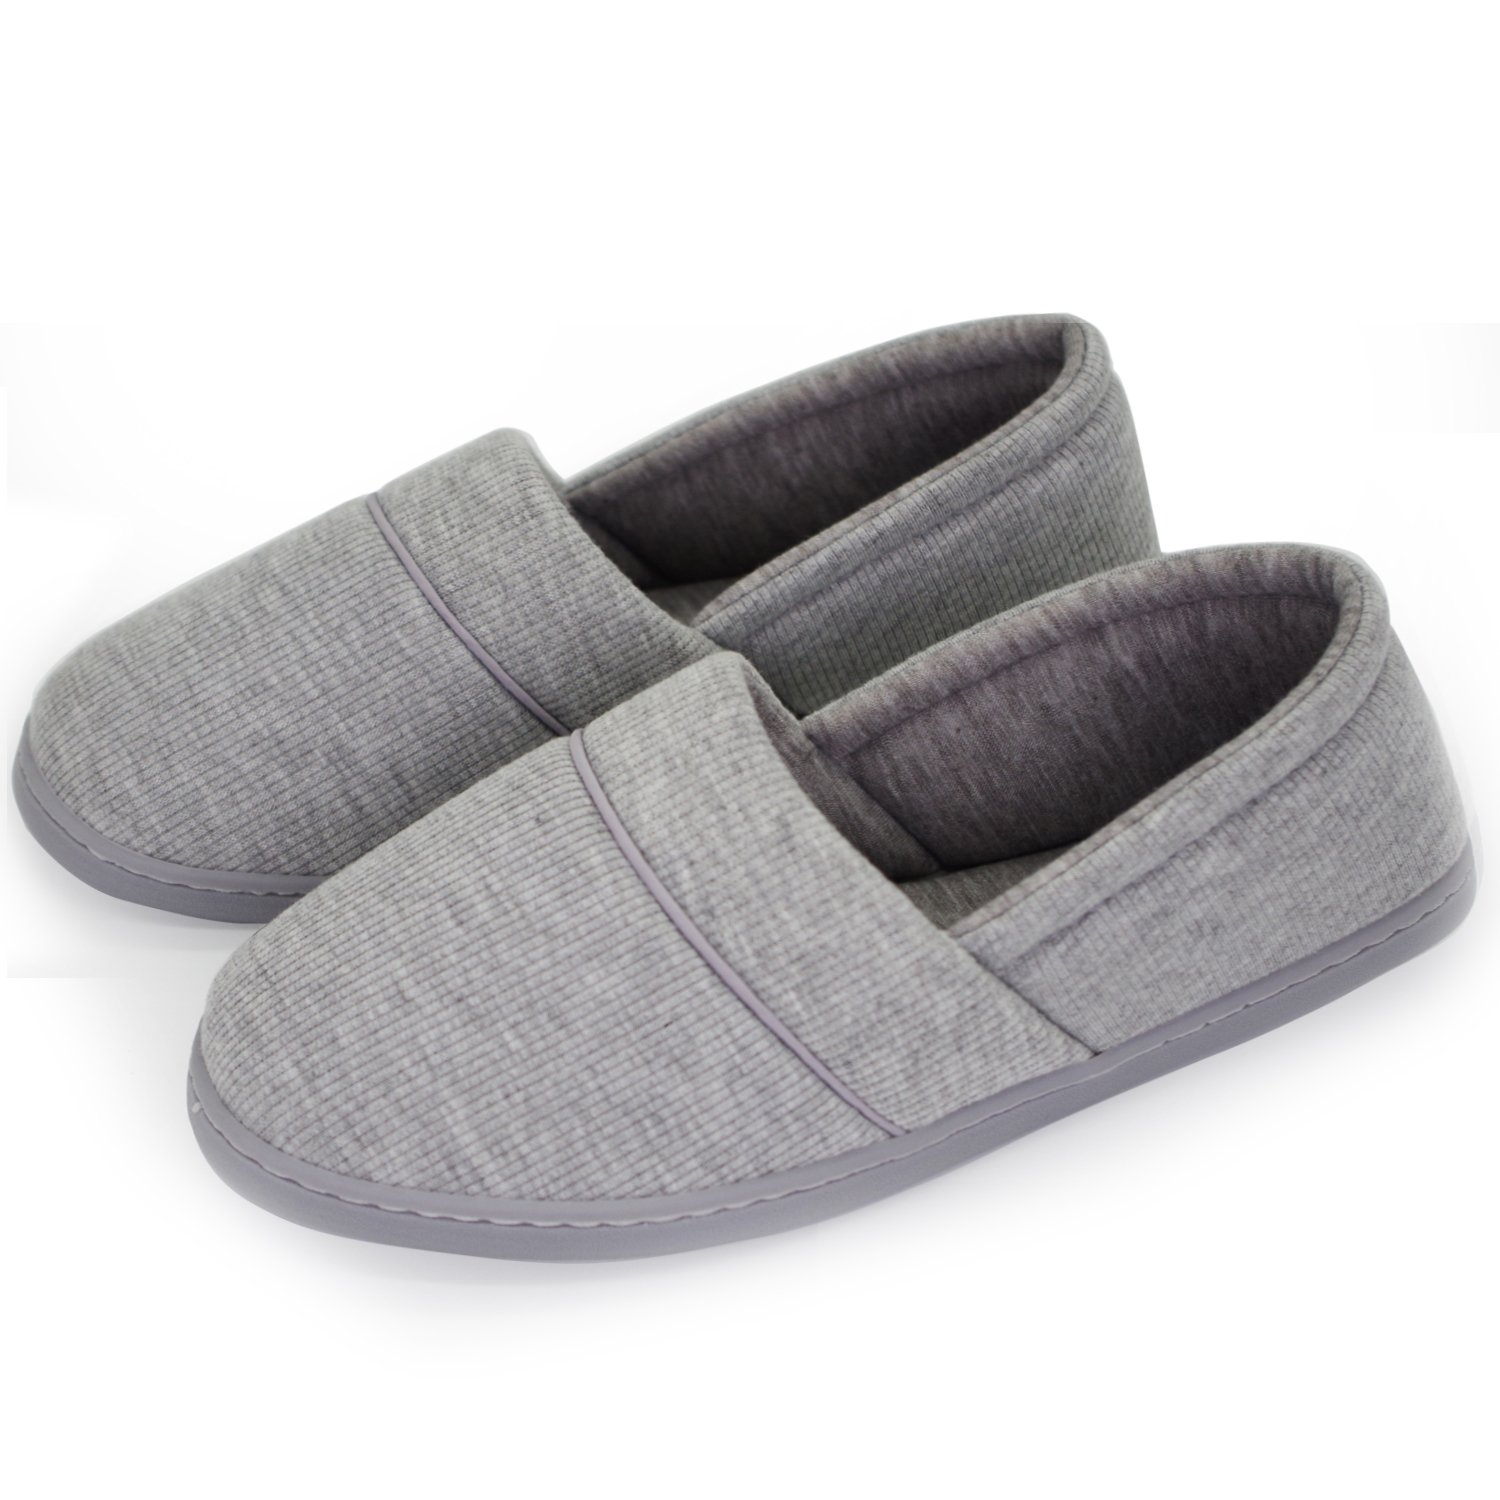 Qiucdzi Womens House Slippers Lightweight Breathable Soft Ladies Slippers Anti-Skid Comfort Cotton Home Shoes